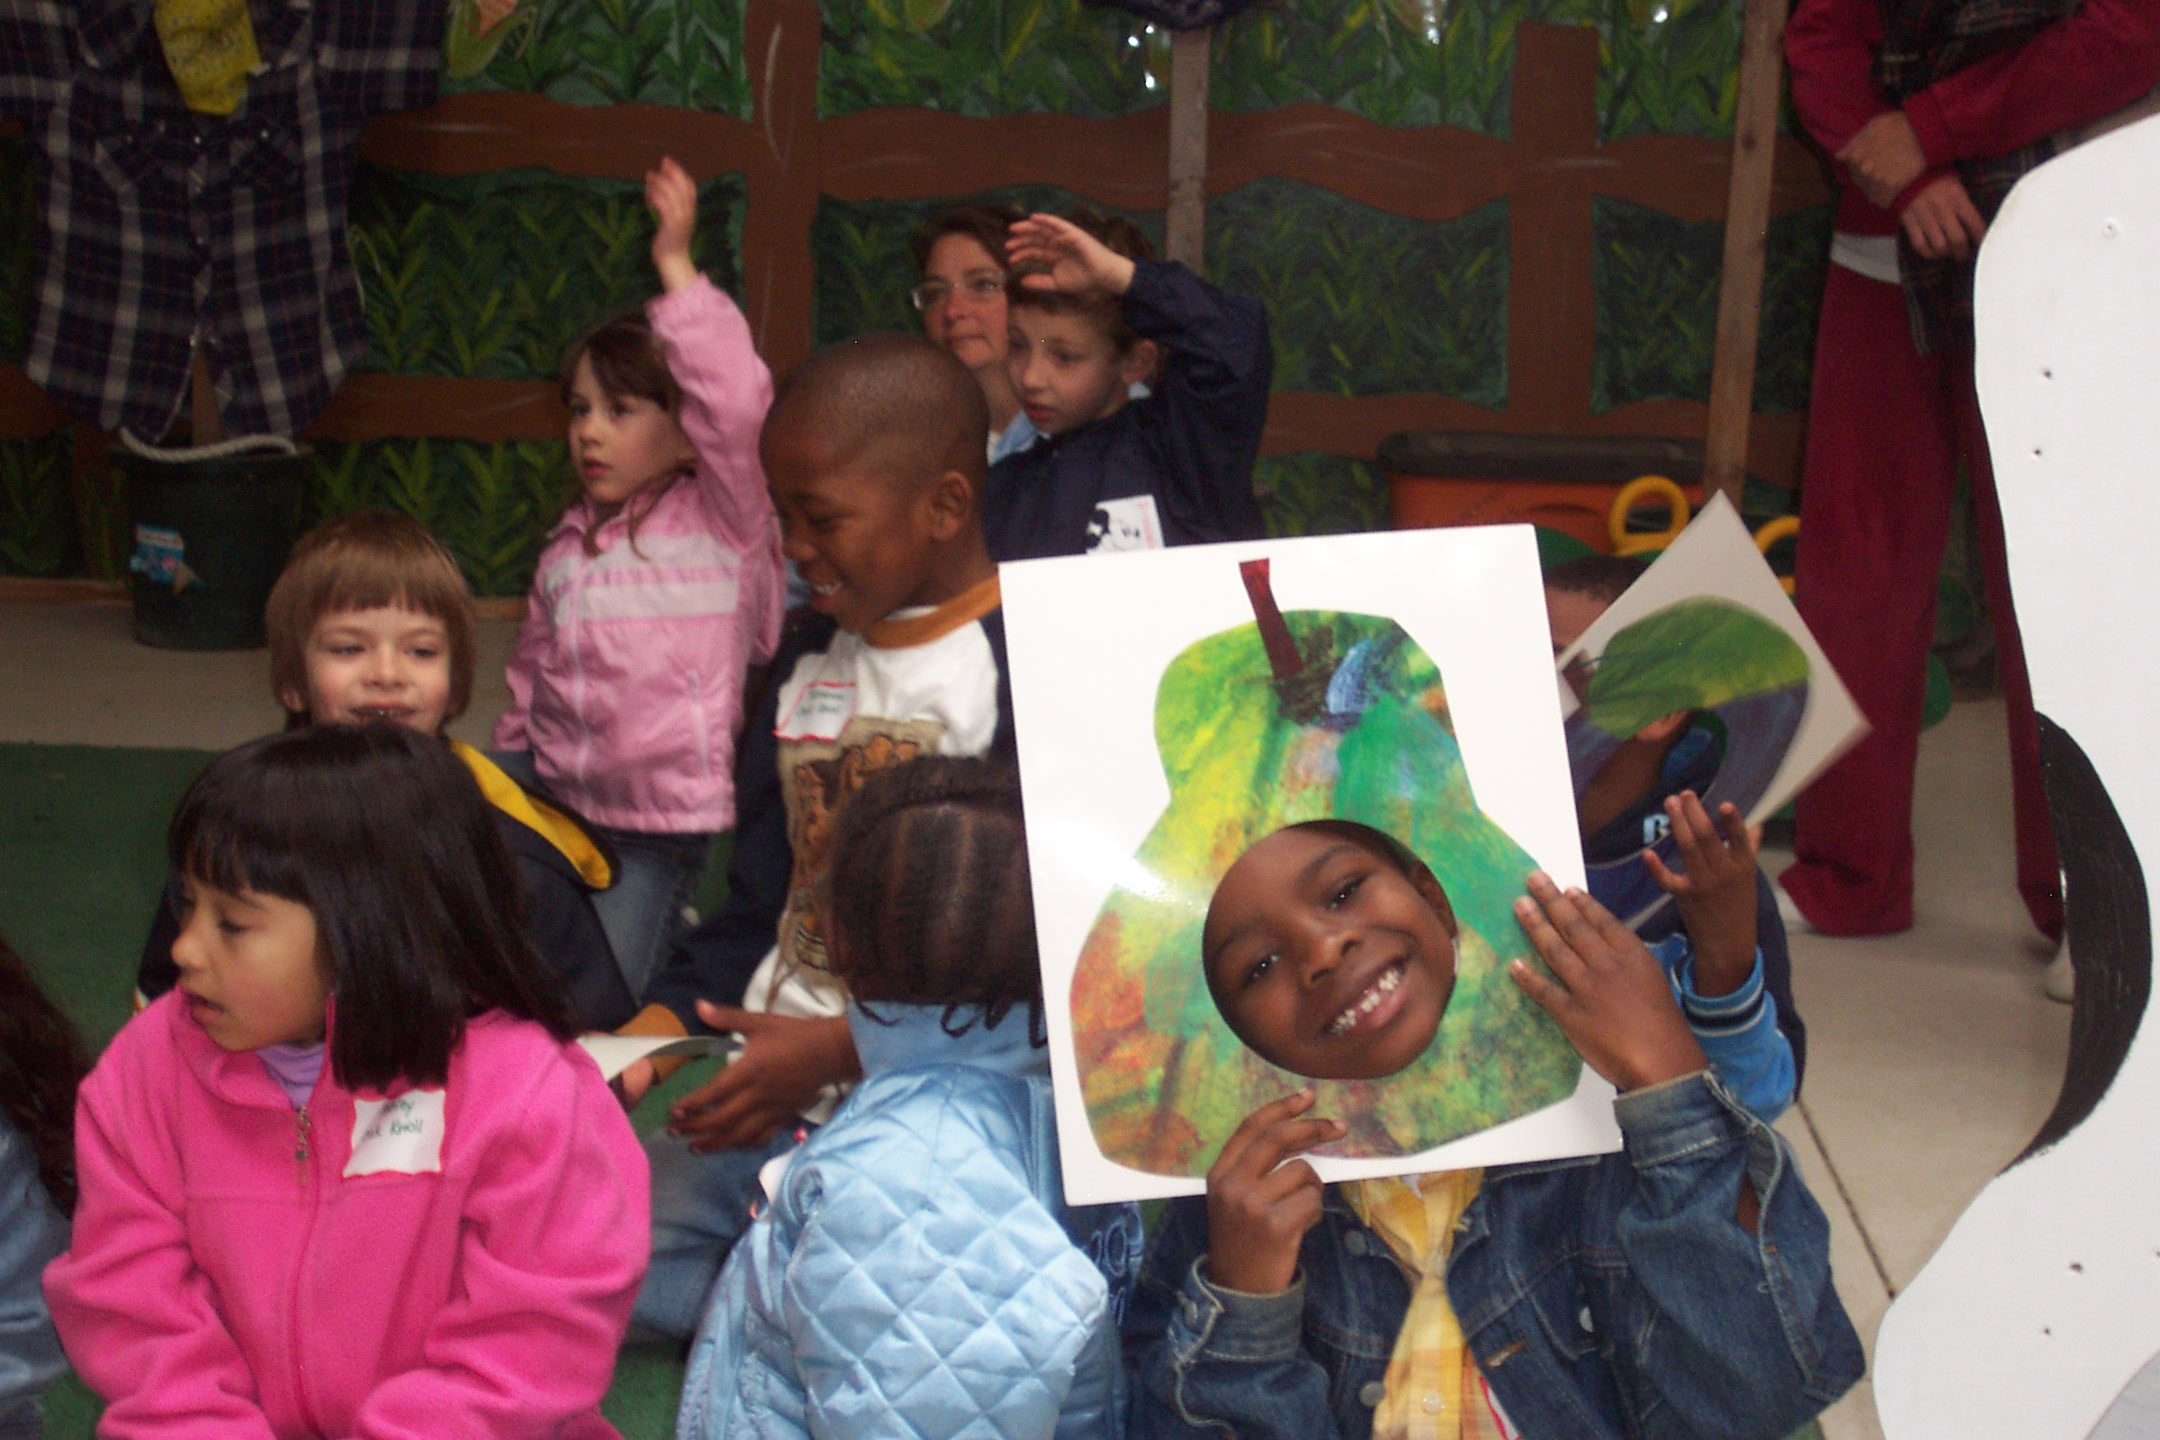 """The Very Hungry Caterpillar story comes alive in our Learning Barn then each student will make a """"Hairy Caterpillar"""" to take home with them and watch it grow on their windowsill!"""